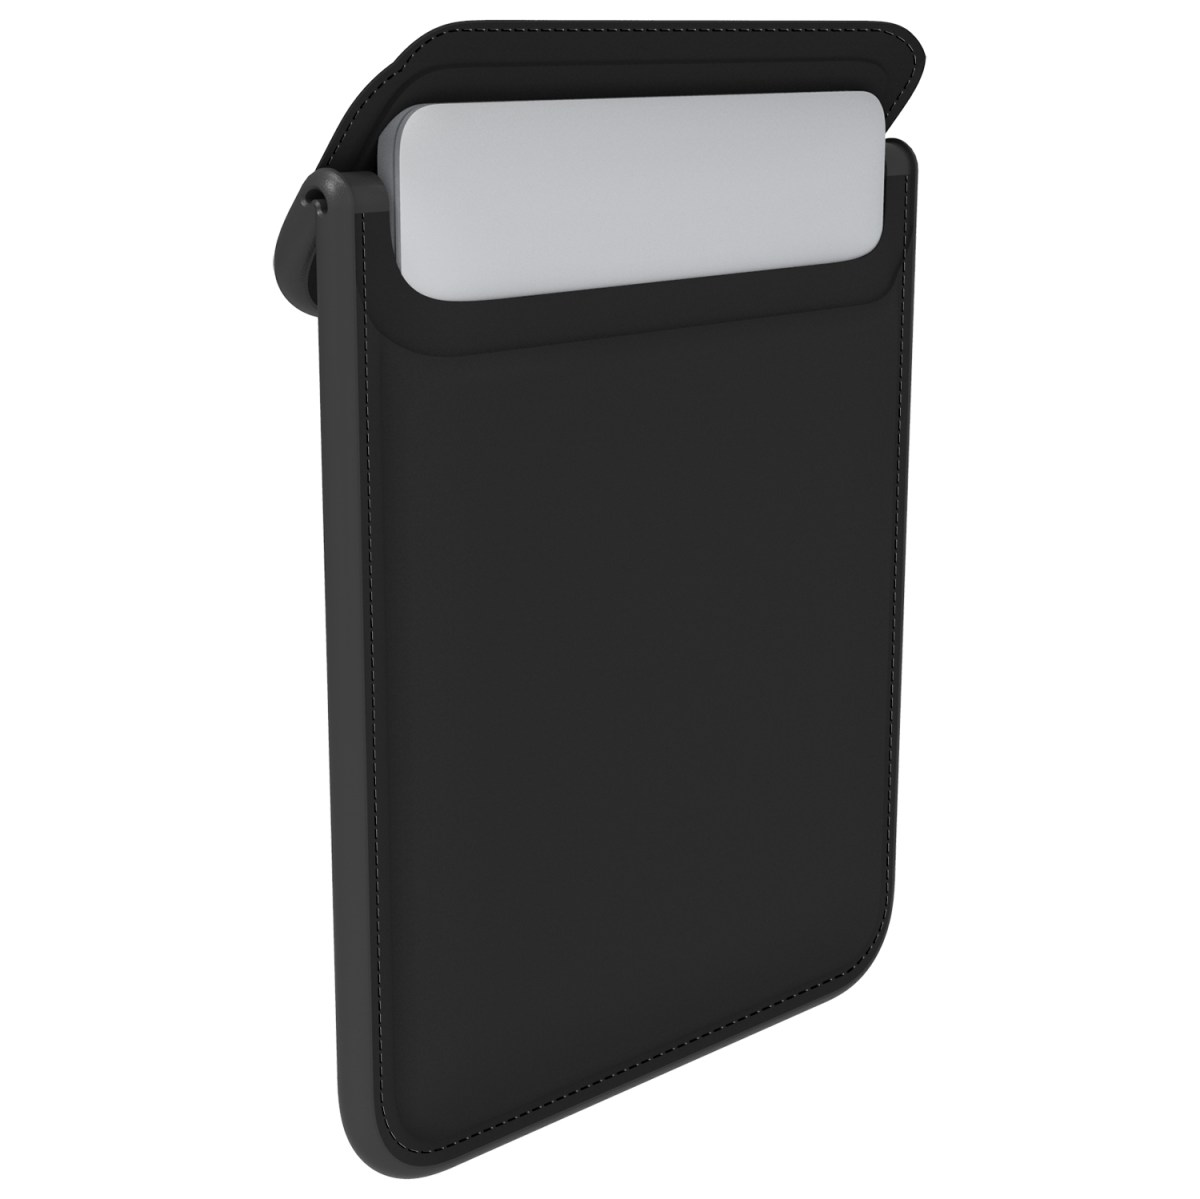 "Husa MacBook 12"" Flaptop Sleeve Black/Slate Grey/Black"